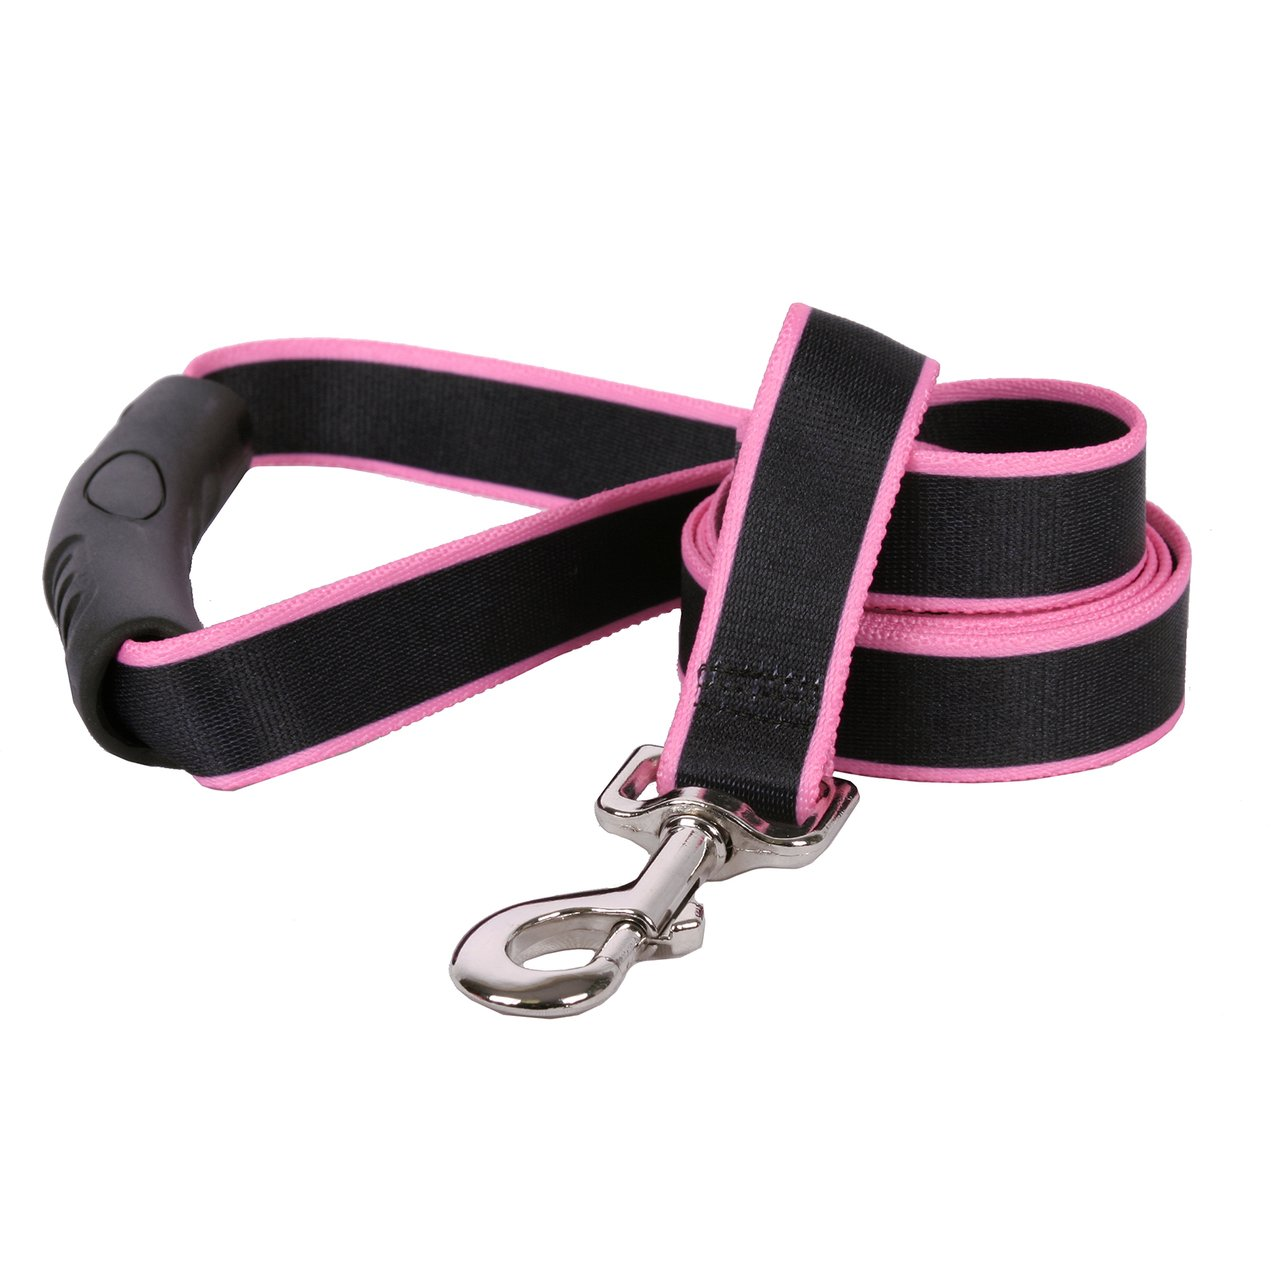 Yellow Dog Design Sterling Stripes Black Light Pink Dog Leash with Comfort Grip Handle-Large-1'' 5' x 60''